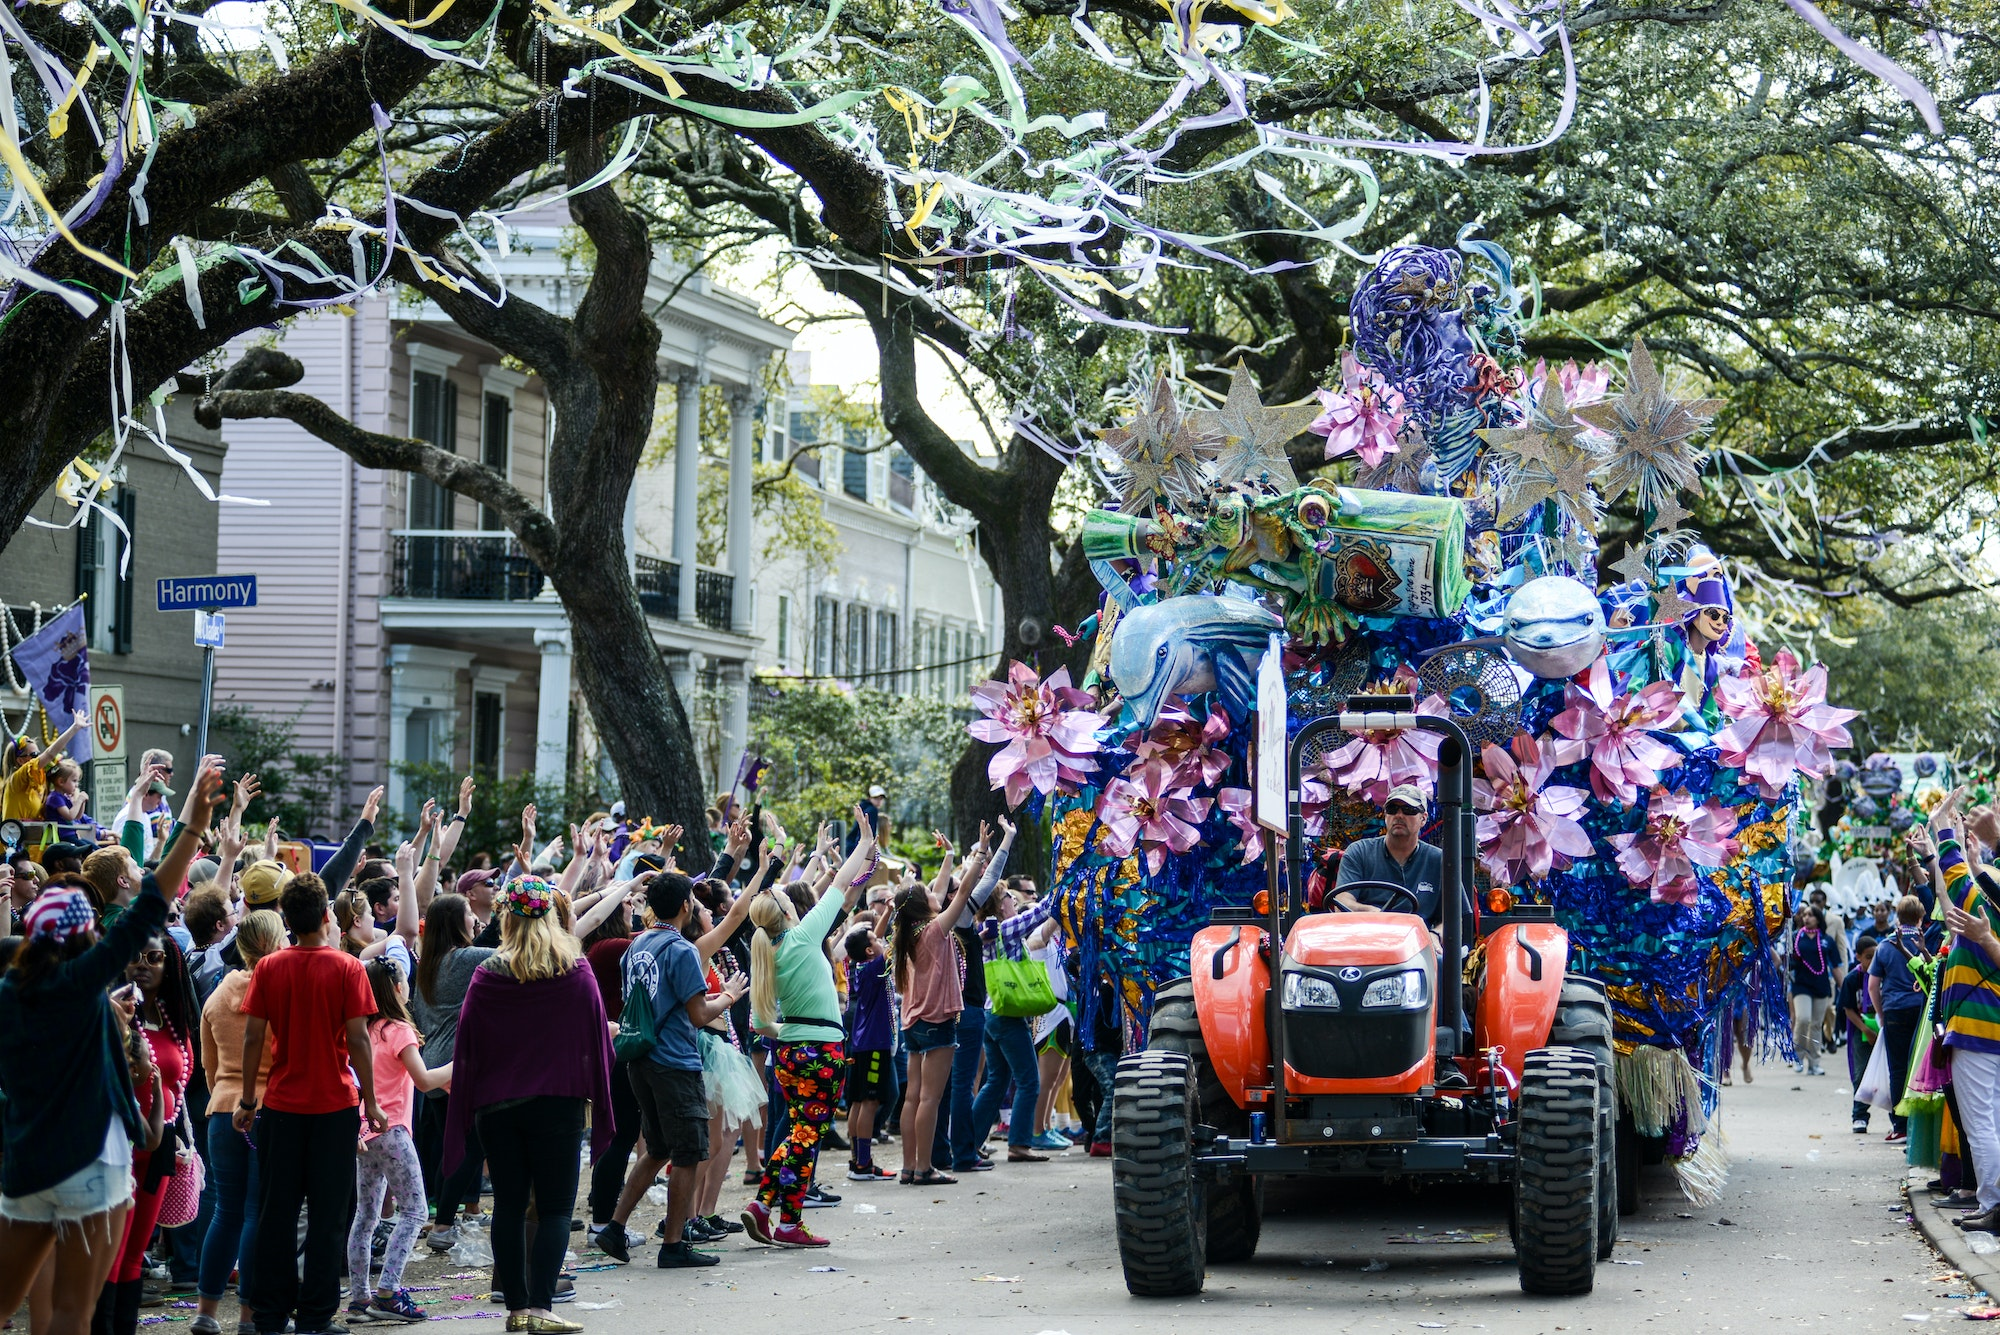 A float for a Mardi Gras parade rolls down St. Charles Avenue in New Orleans.